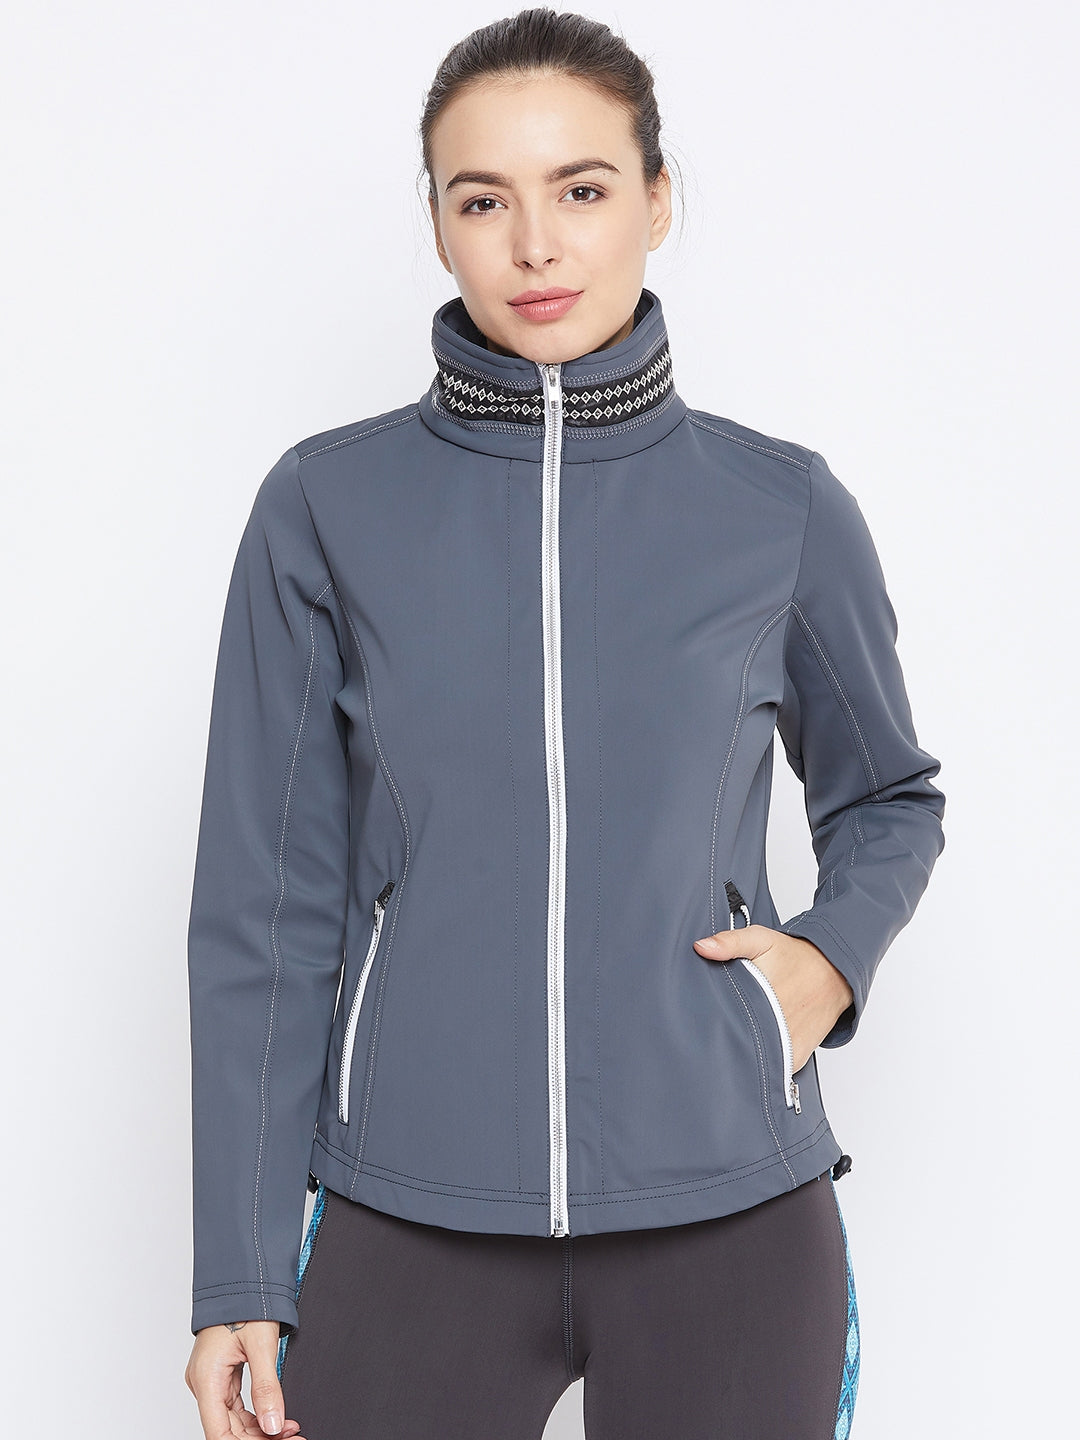 JUMP USA Women Grey Solid Sporty Jacket - JUMP USA